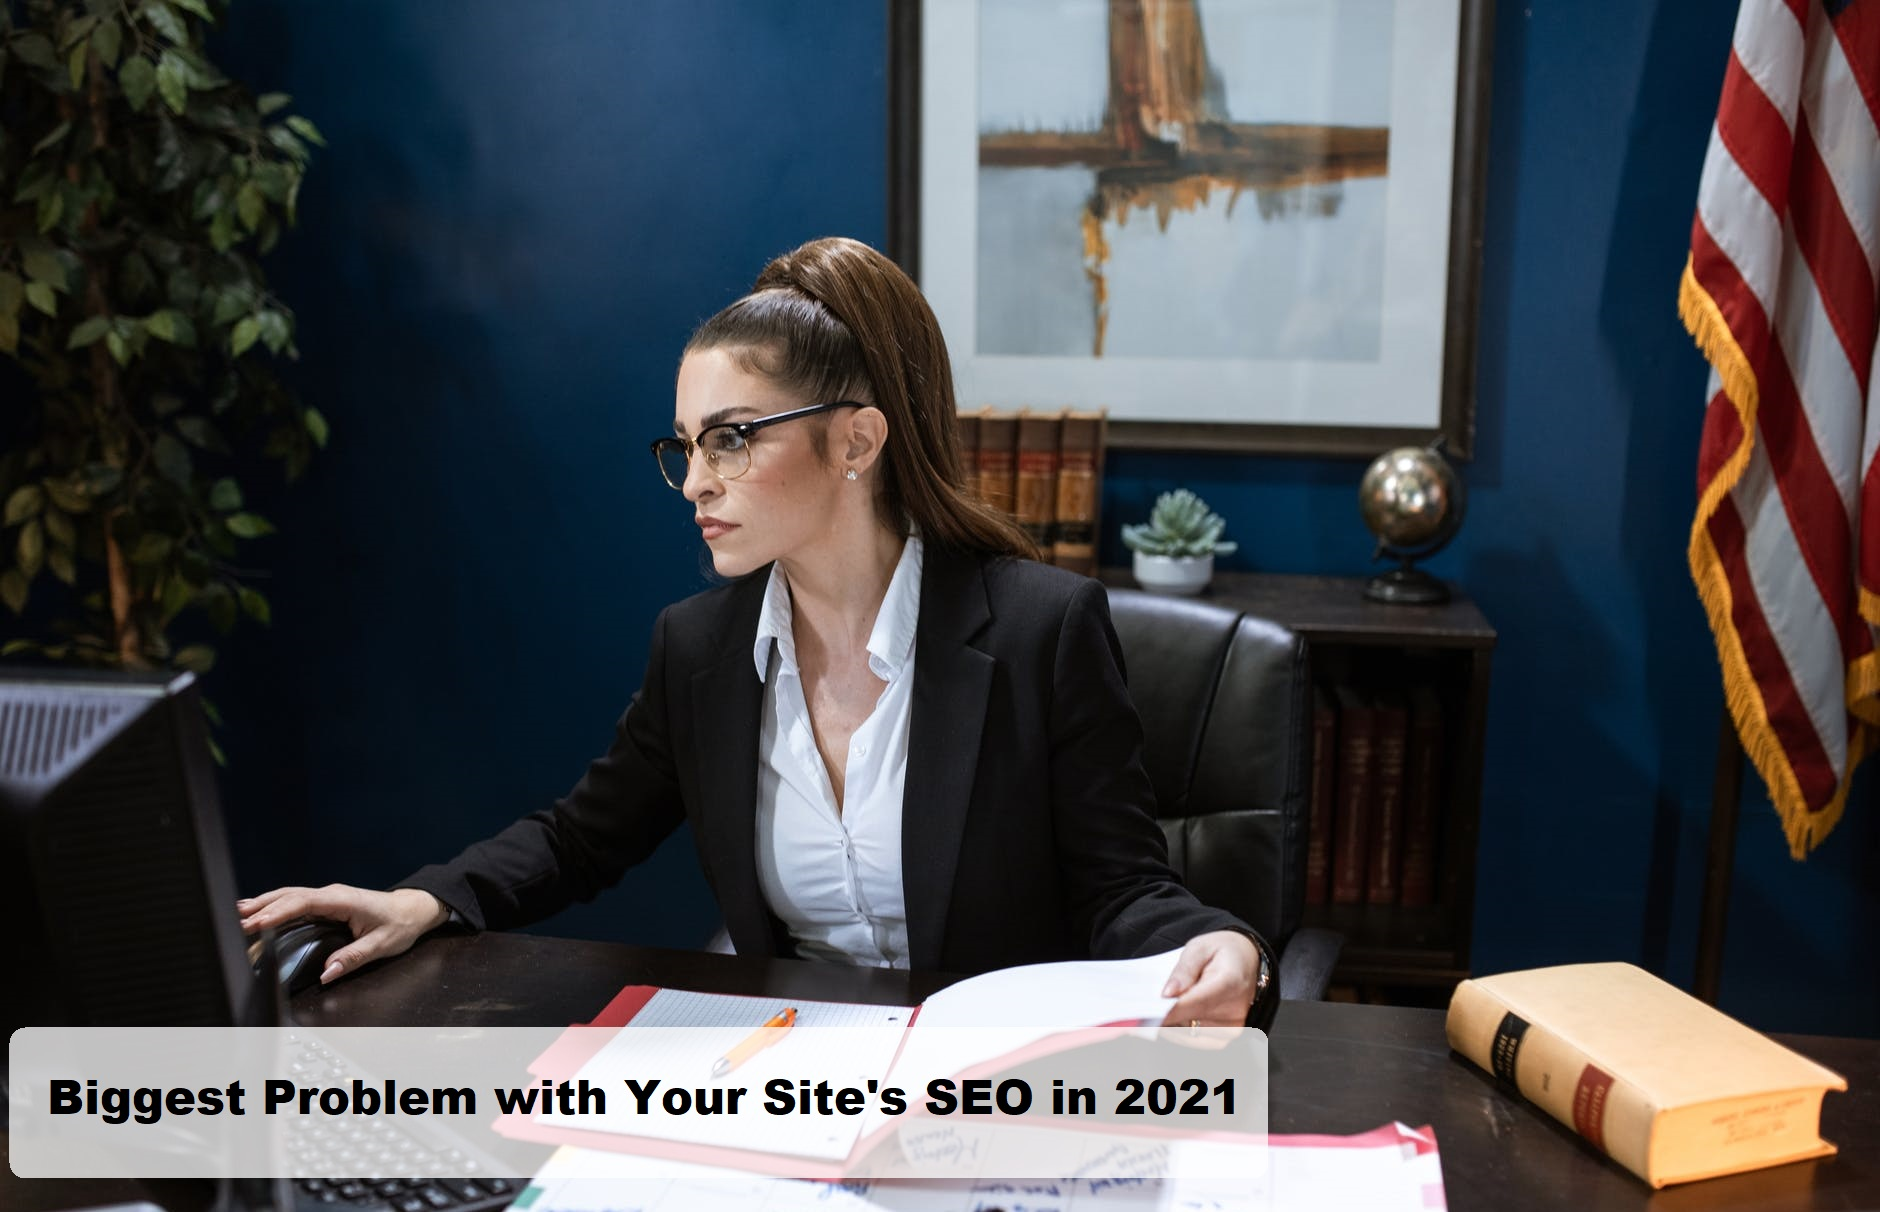 Here's The Biggest Problem with Your Site's SEO in 2021